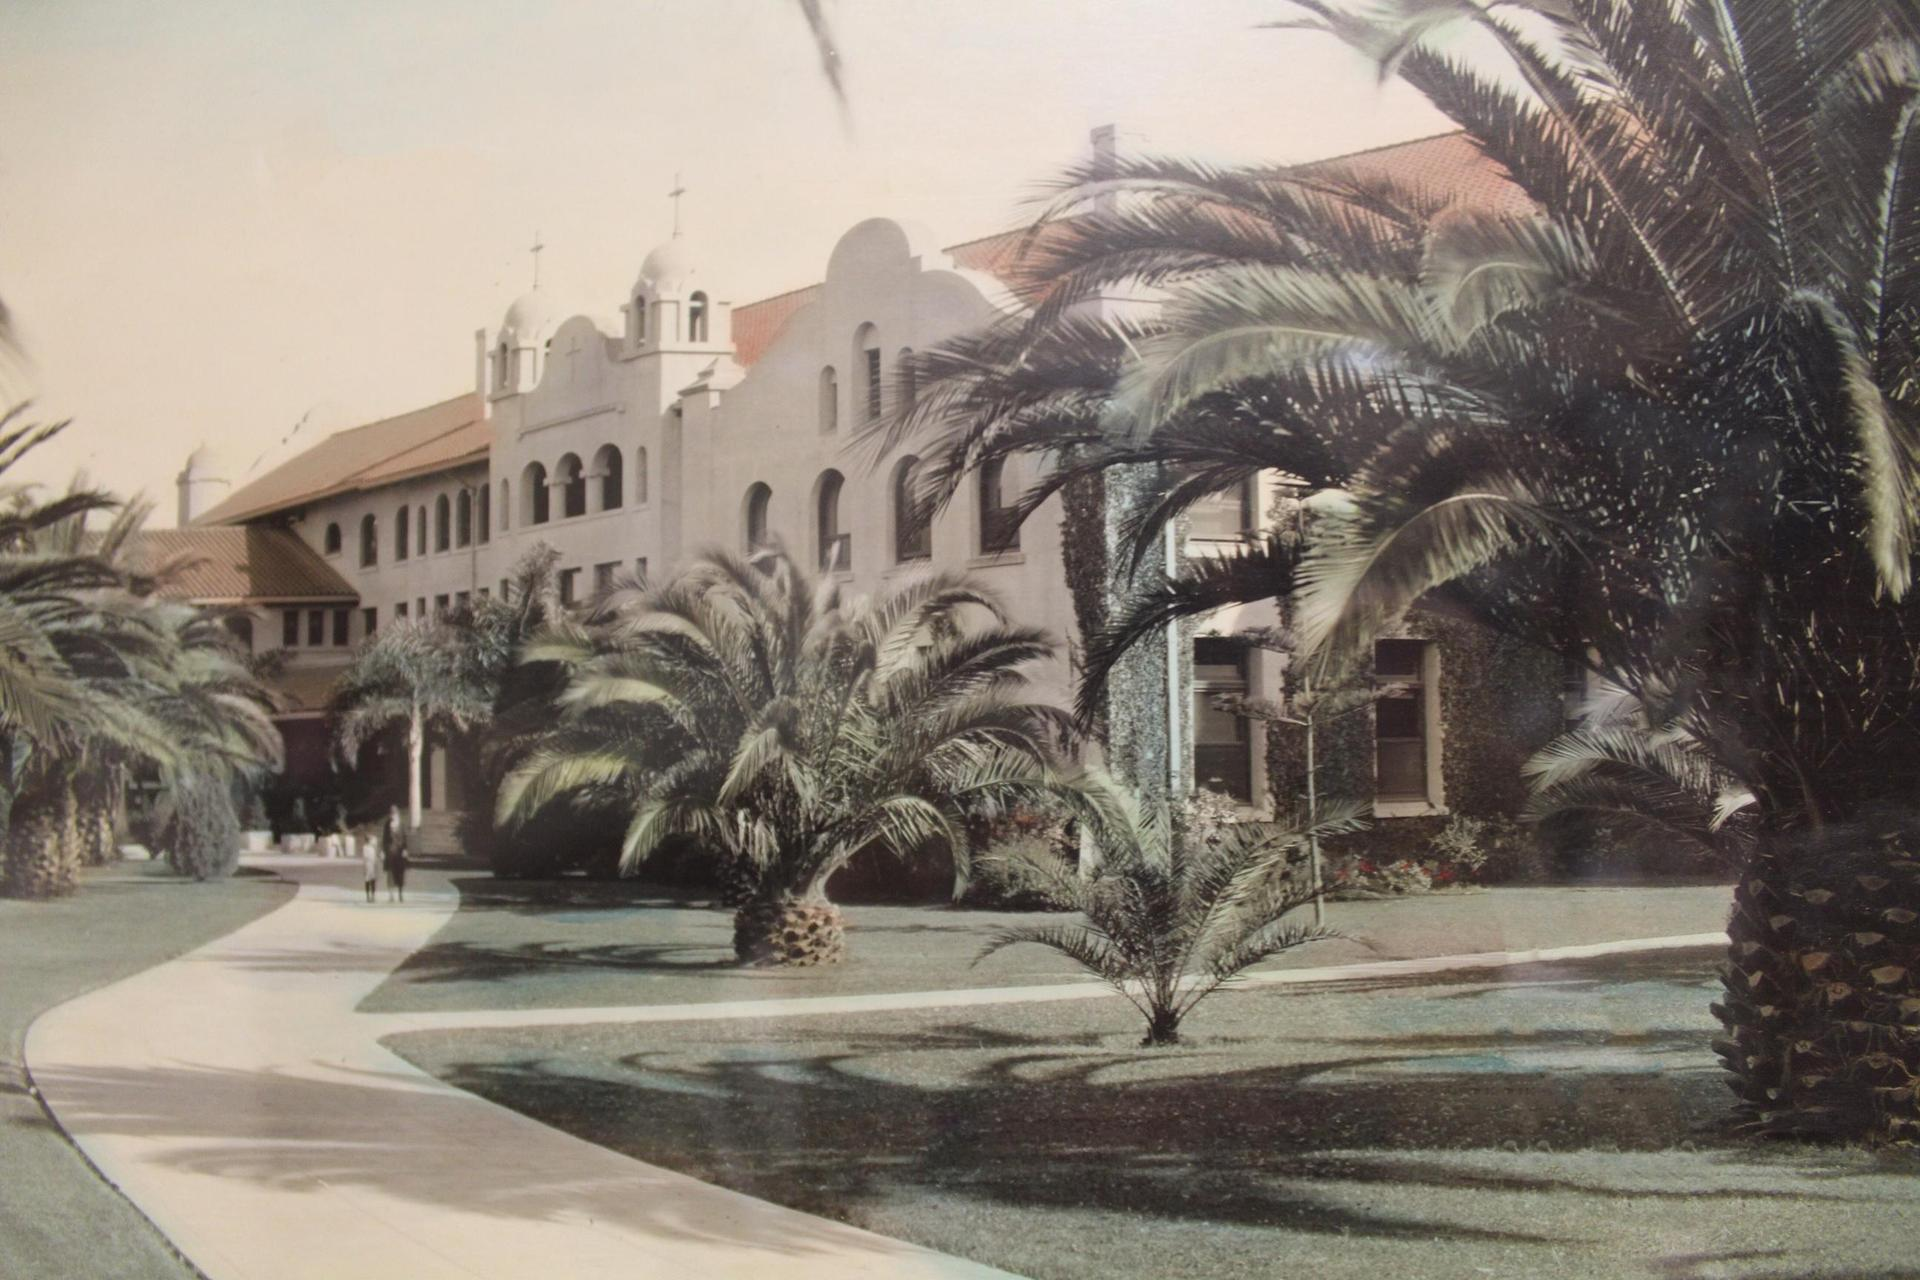 mission style building with palms